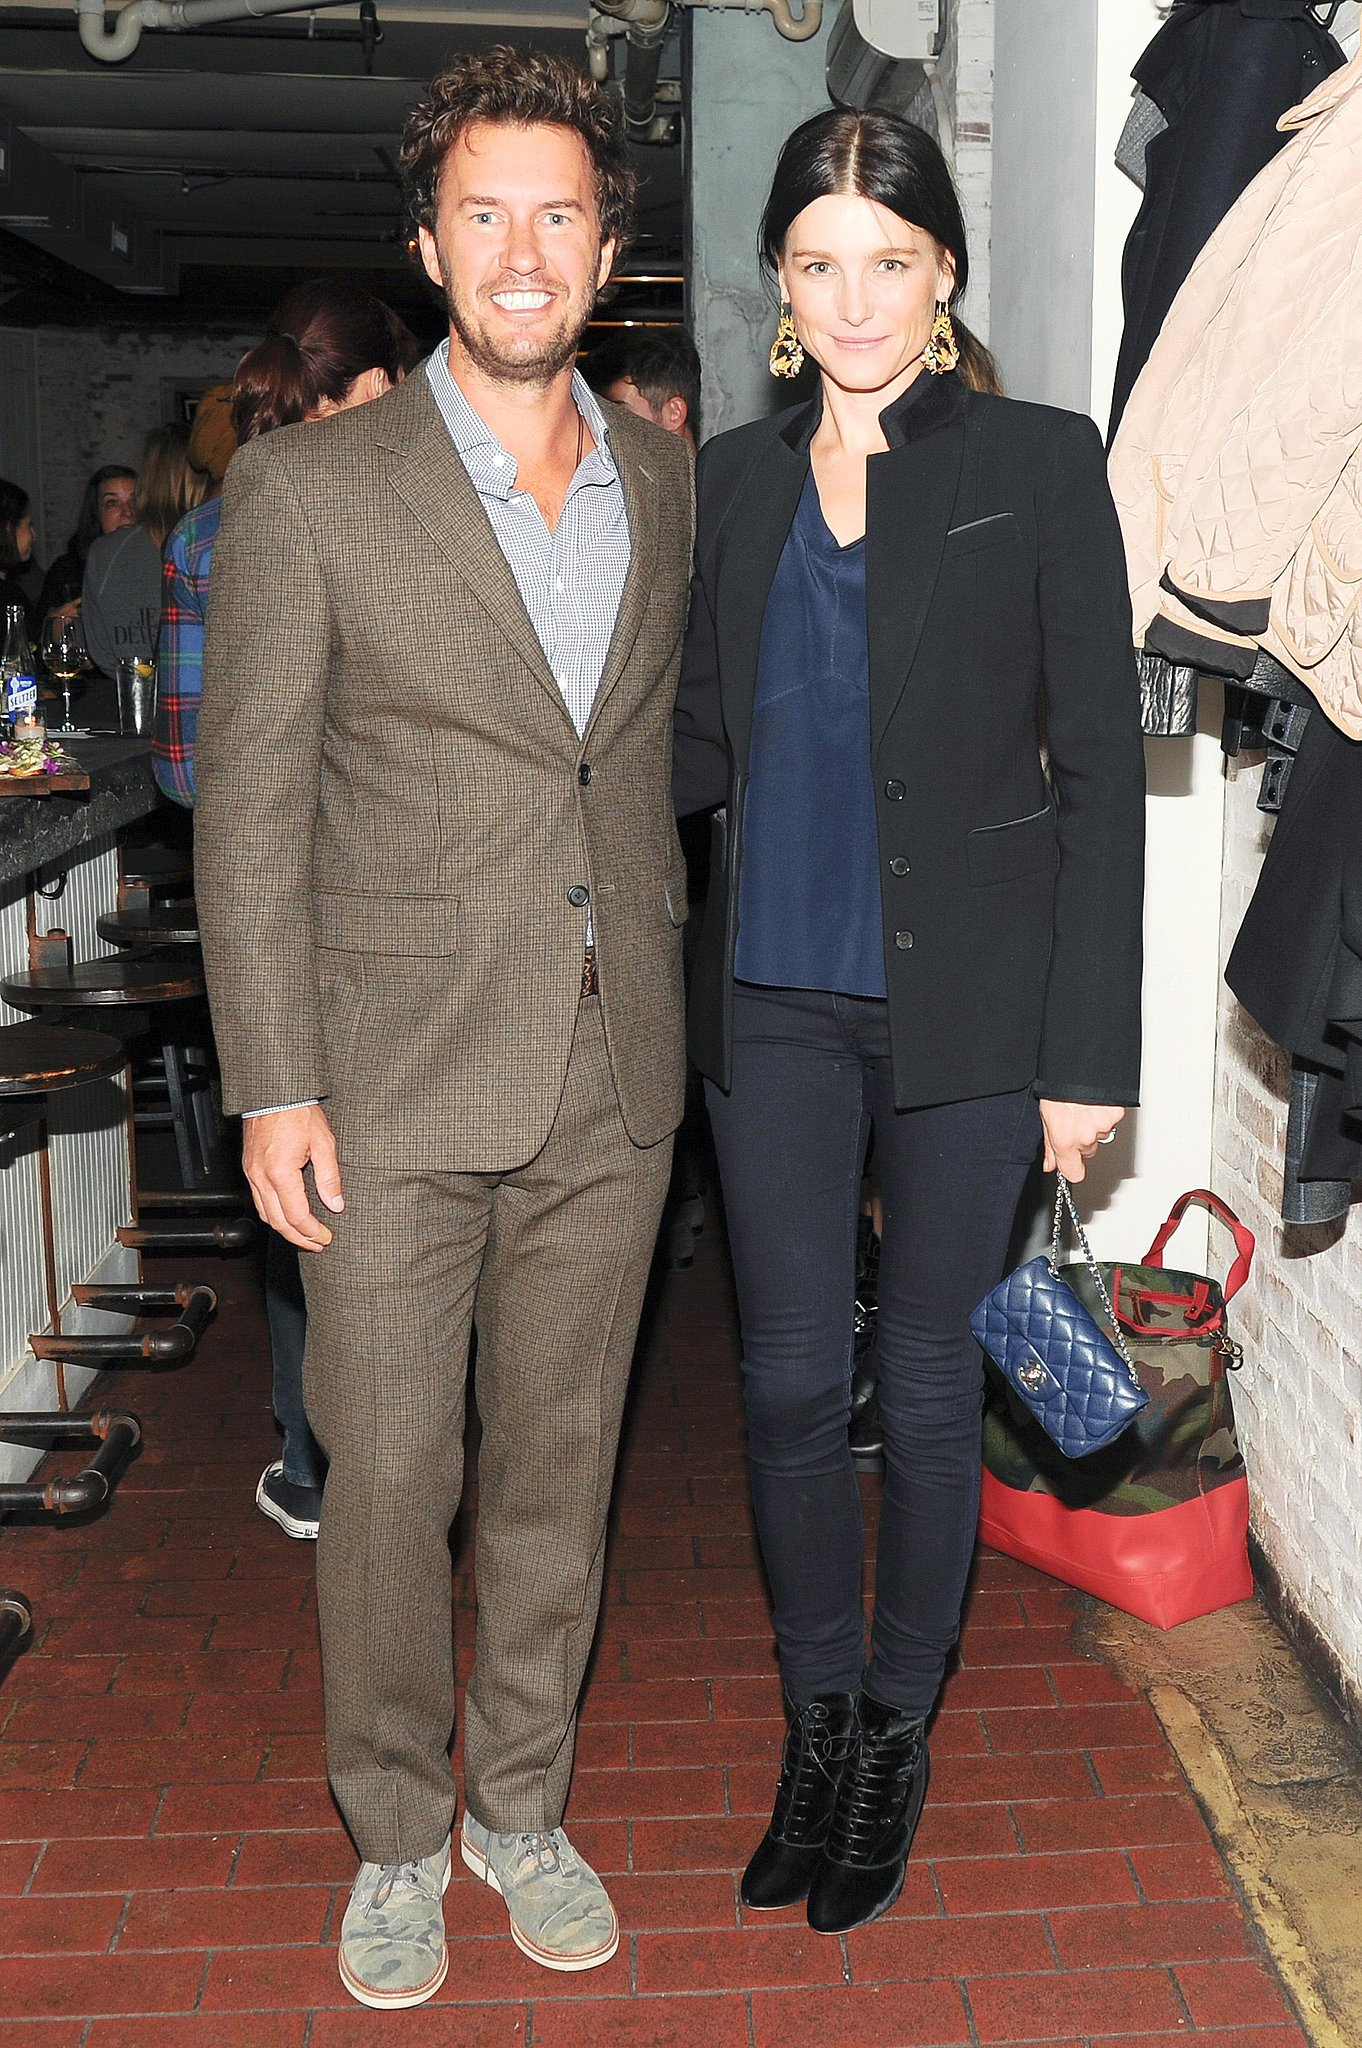 Blake Mycoskie and Tabitha Simmons teamed up to celebrate their TOMS collaboration at New York's The Fat Radish.